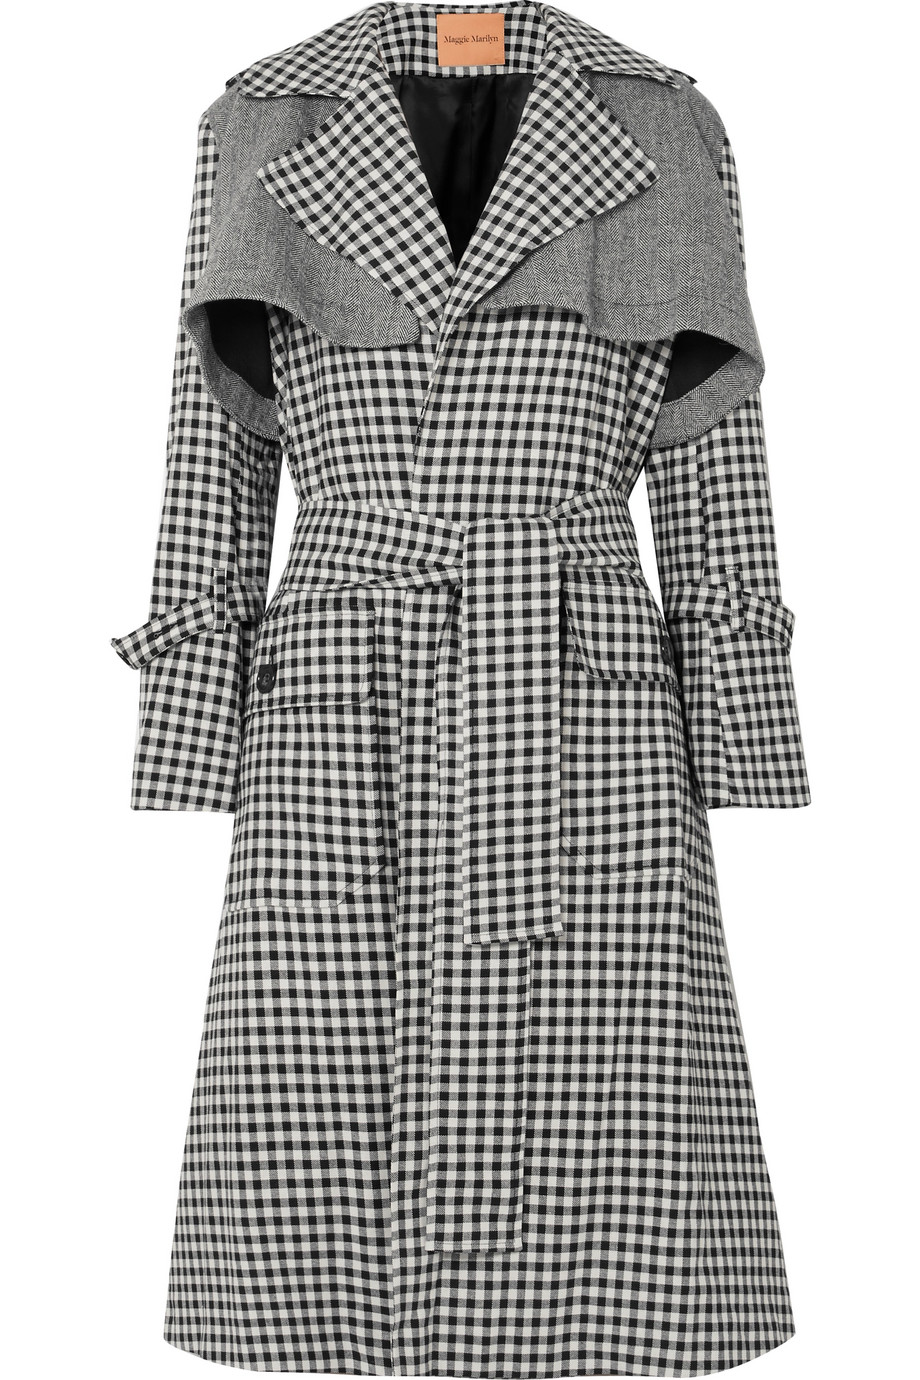 MAGGIE MARILYN Be Strong and Courageous gingham cotton and herringbone wool trench coat, £680